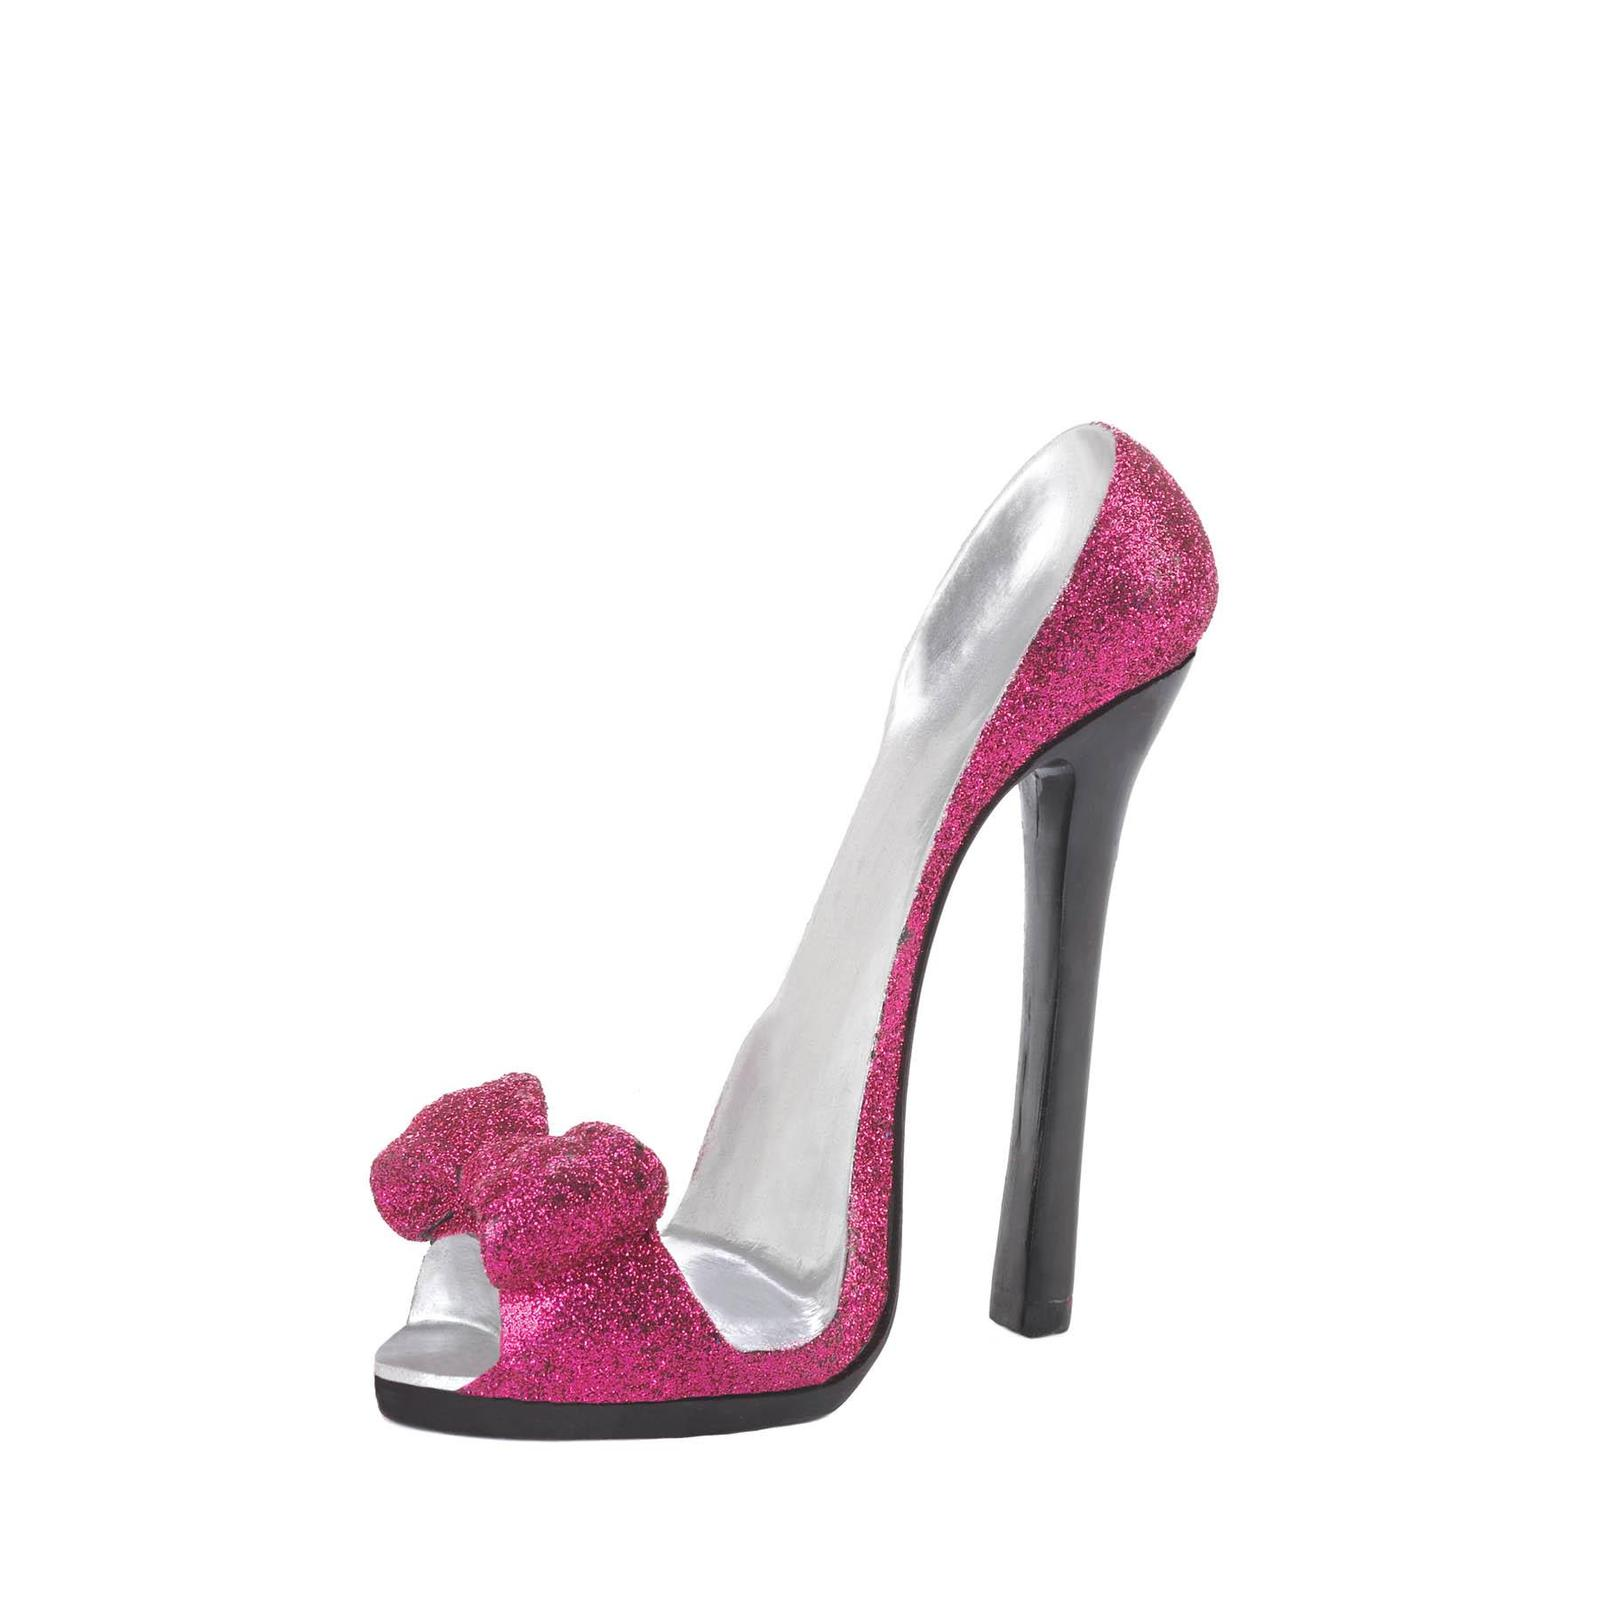 PINK BOW SHOE PHONE HOLDER Chic High Heel Mobile Cell Stand Gift